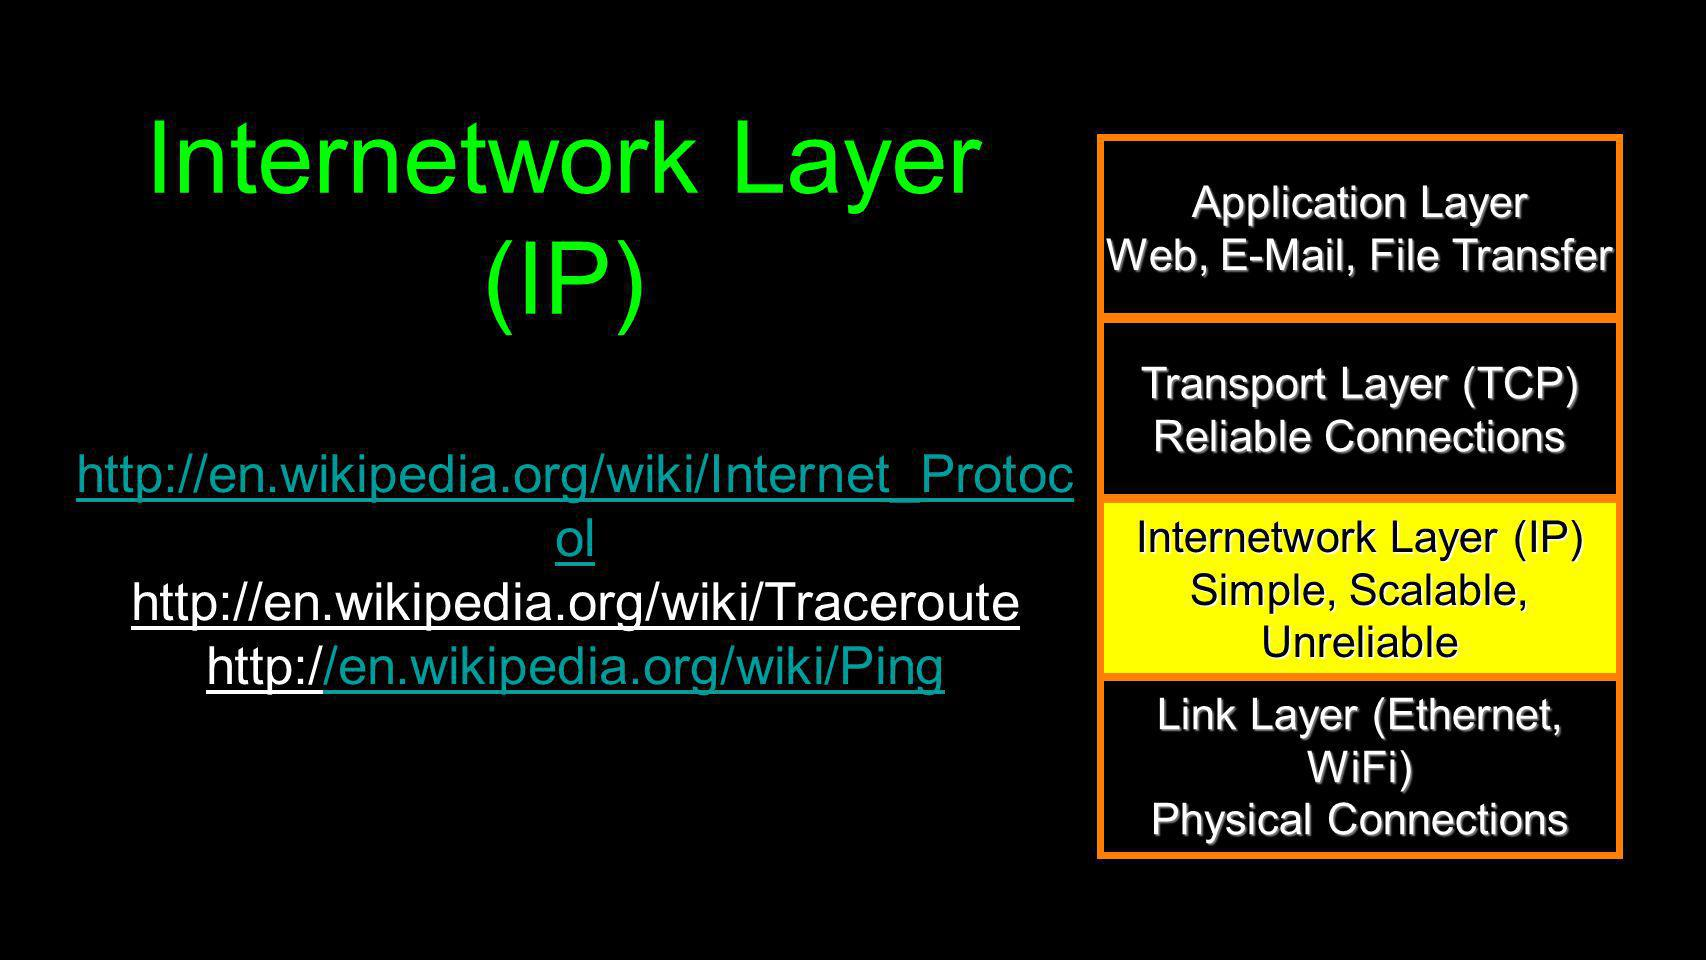 Internetwork Layer (IP) Application Layer Web, E-Mail, File Transfer Transport Layer (TCP) Reliable Connections Internetwork Layer (IP) Simple, Scalab